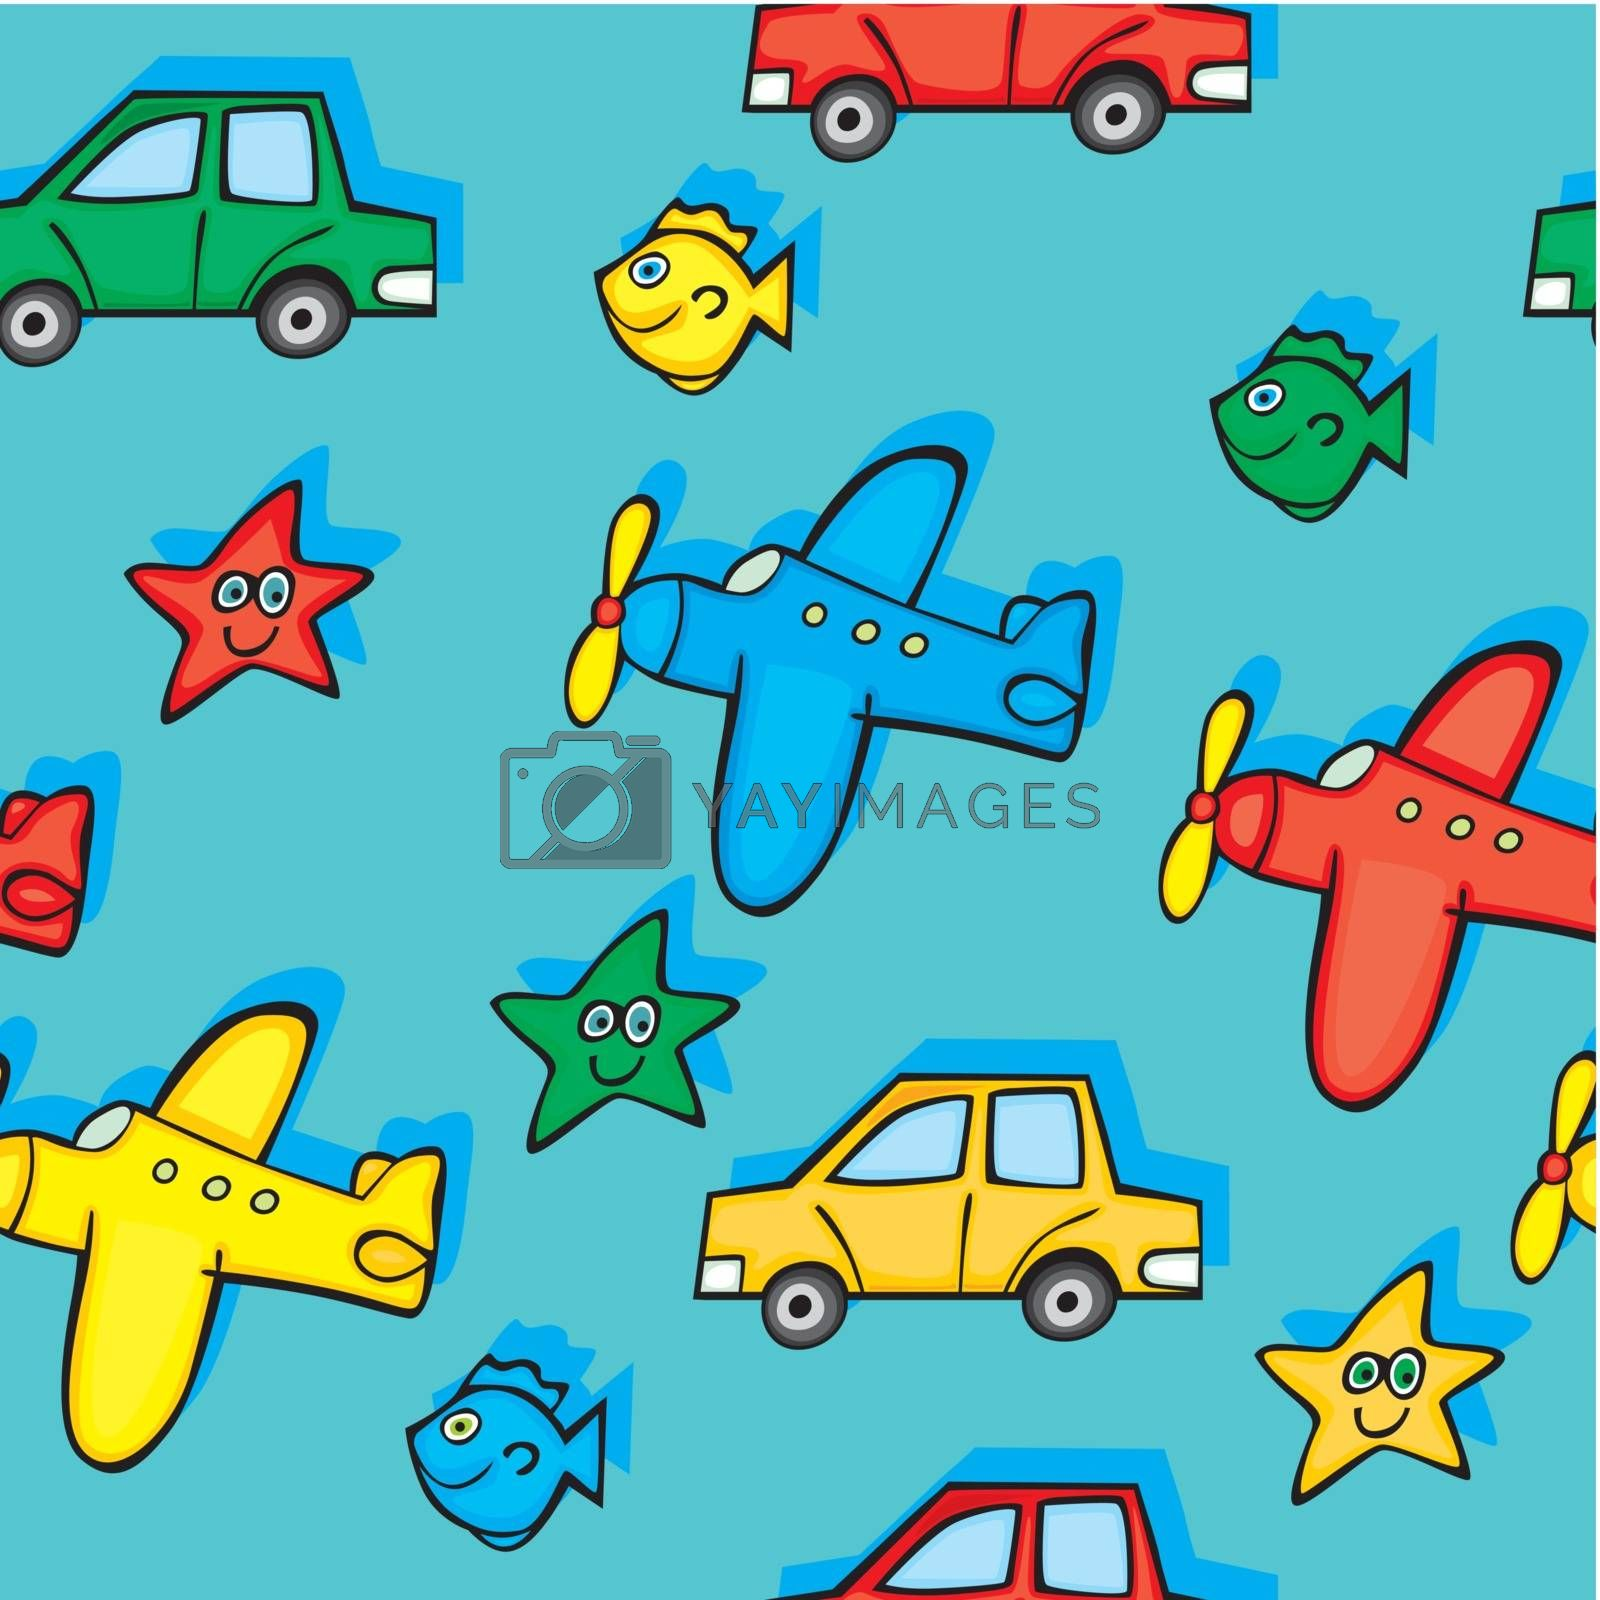 fully editable vector illustration with seamless toys